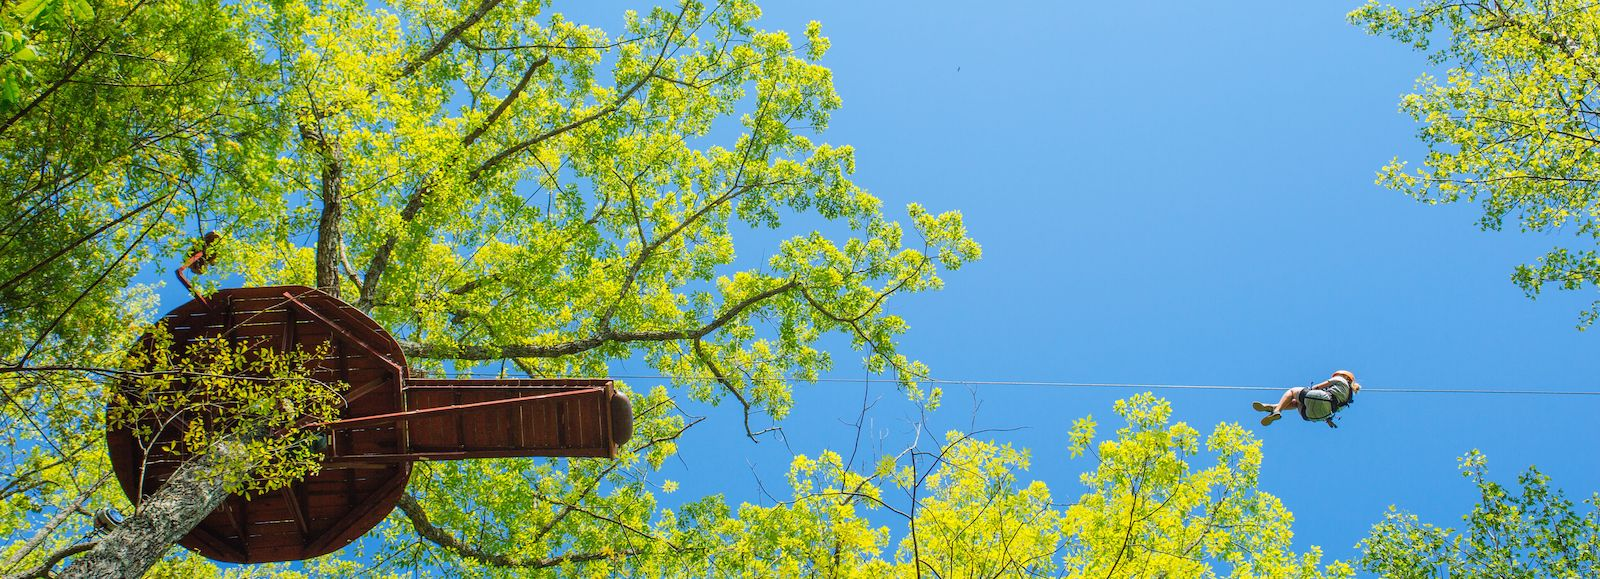 All About One of The Best Ziplines in Gatlinburg: Treetop Zipline Tour